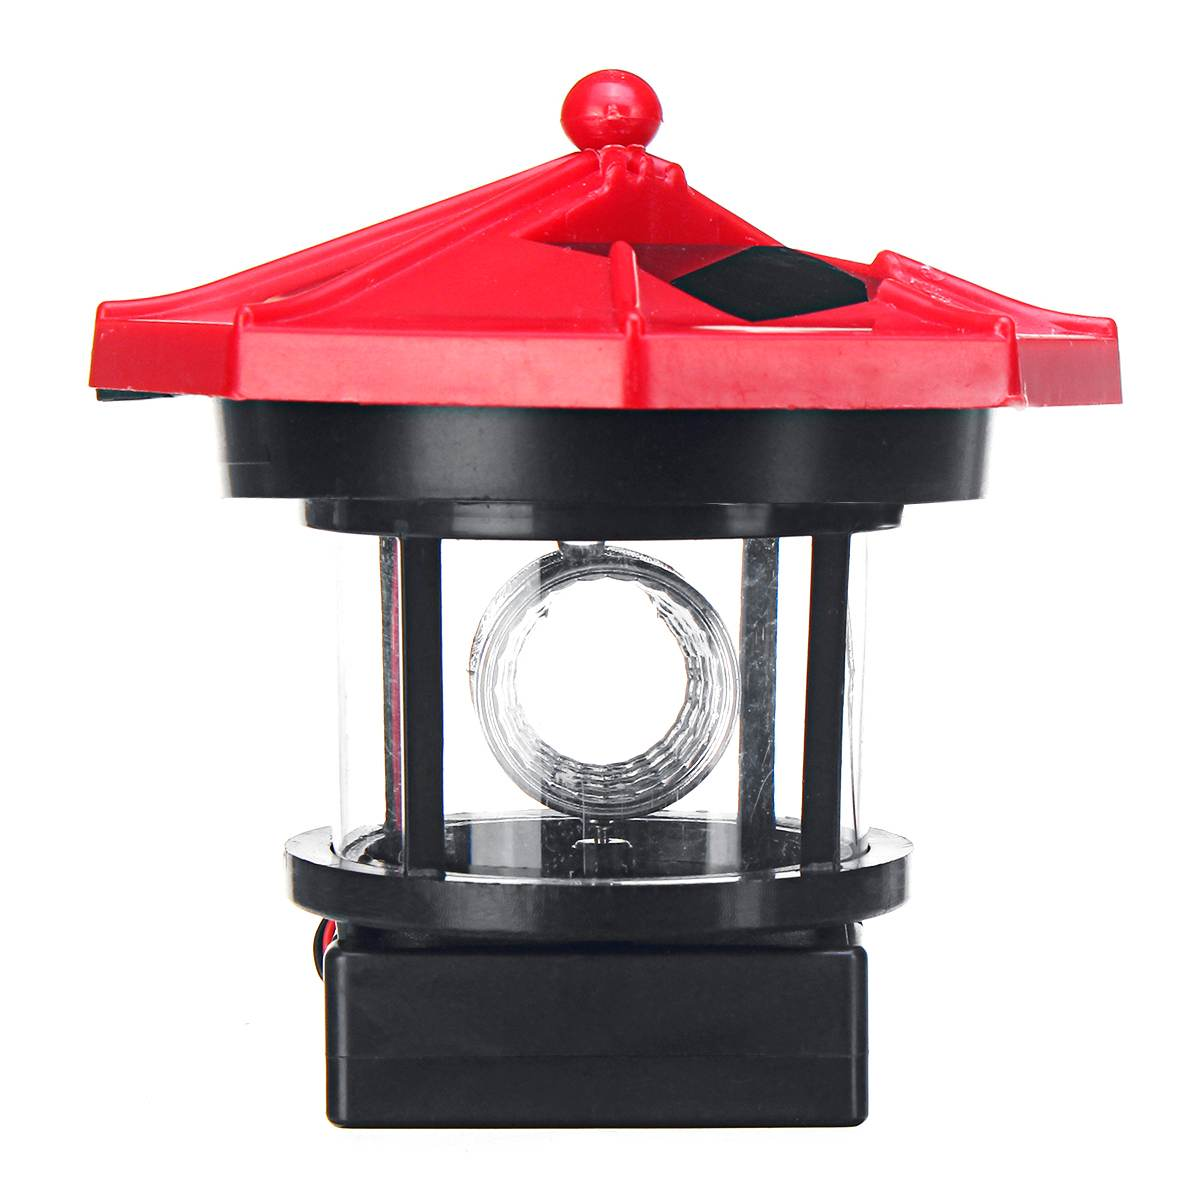 Smuxi LED Solar Powered Resin Lighthouse Statue Rotating Outdoor Garden Yard Lighting Decor Shines In Rotating Motion 9x5x9.9cm